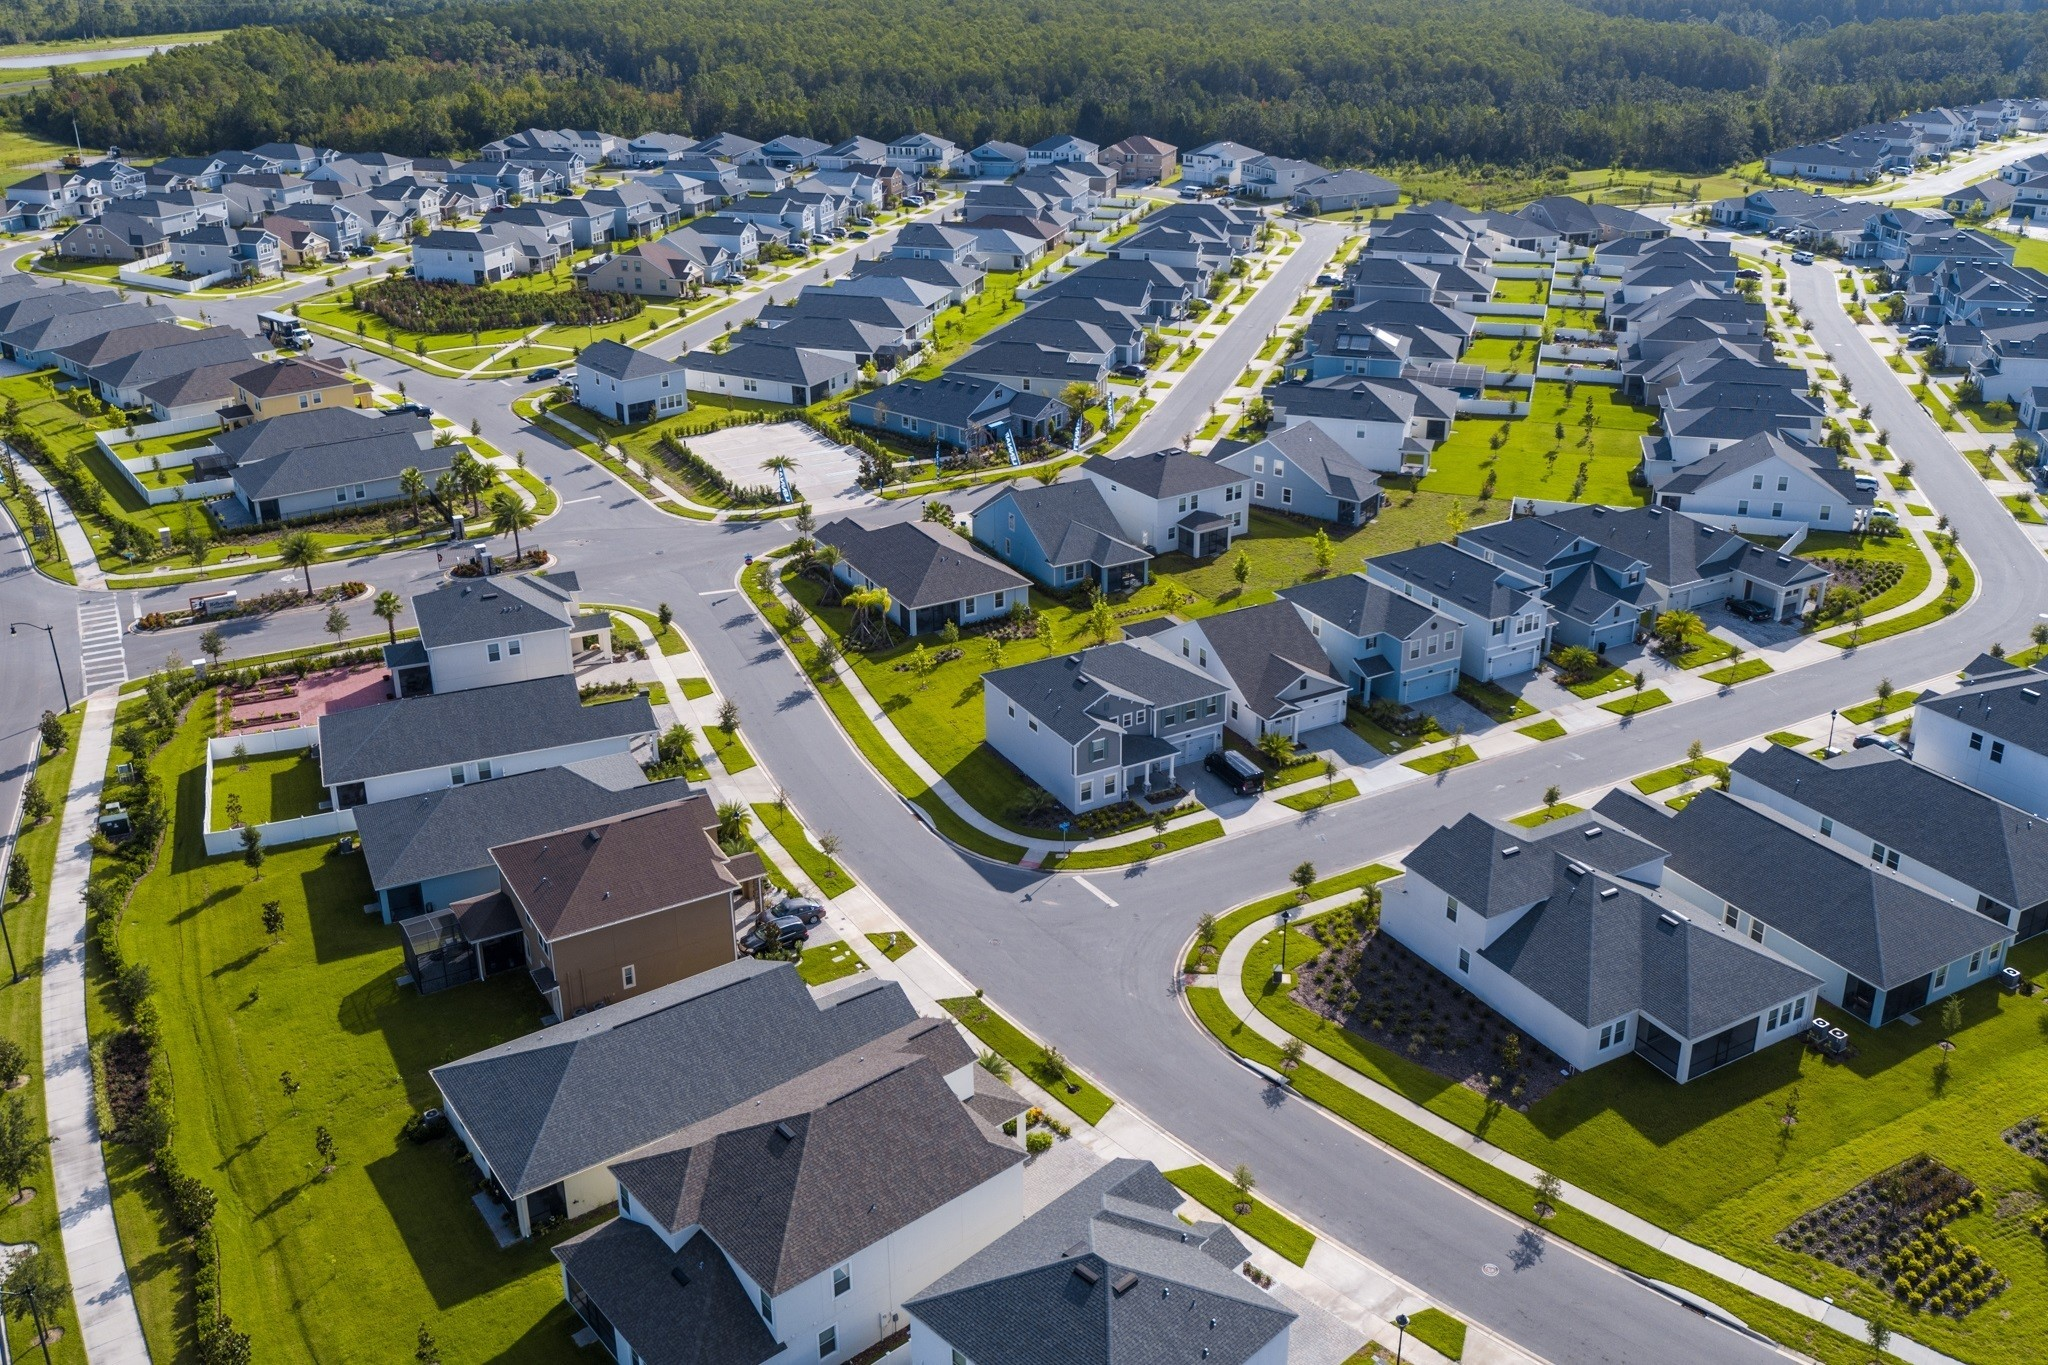 residential property developments - growthspotter